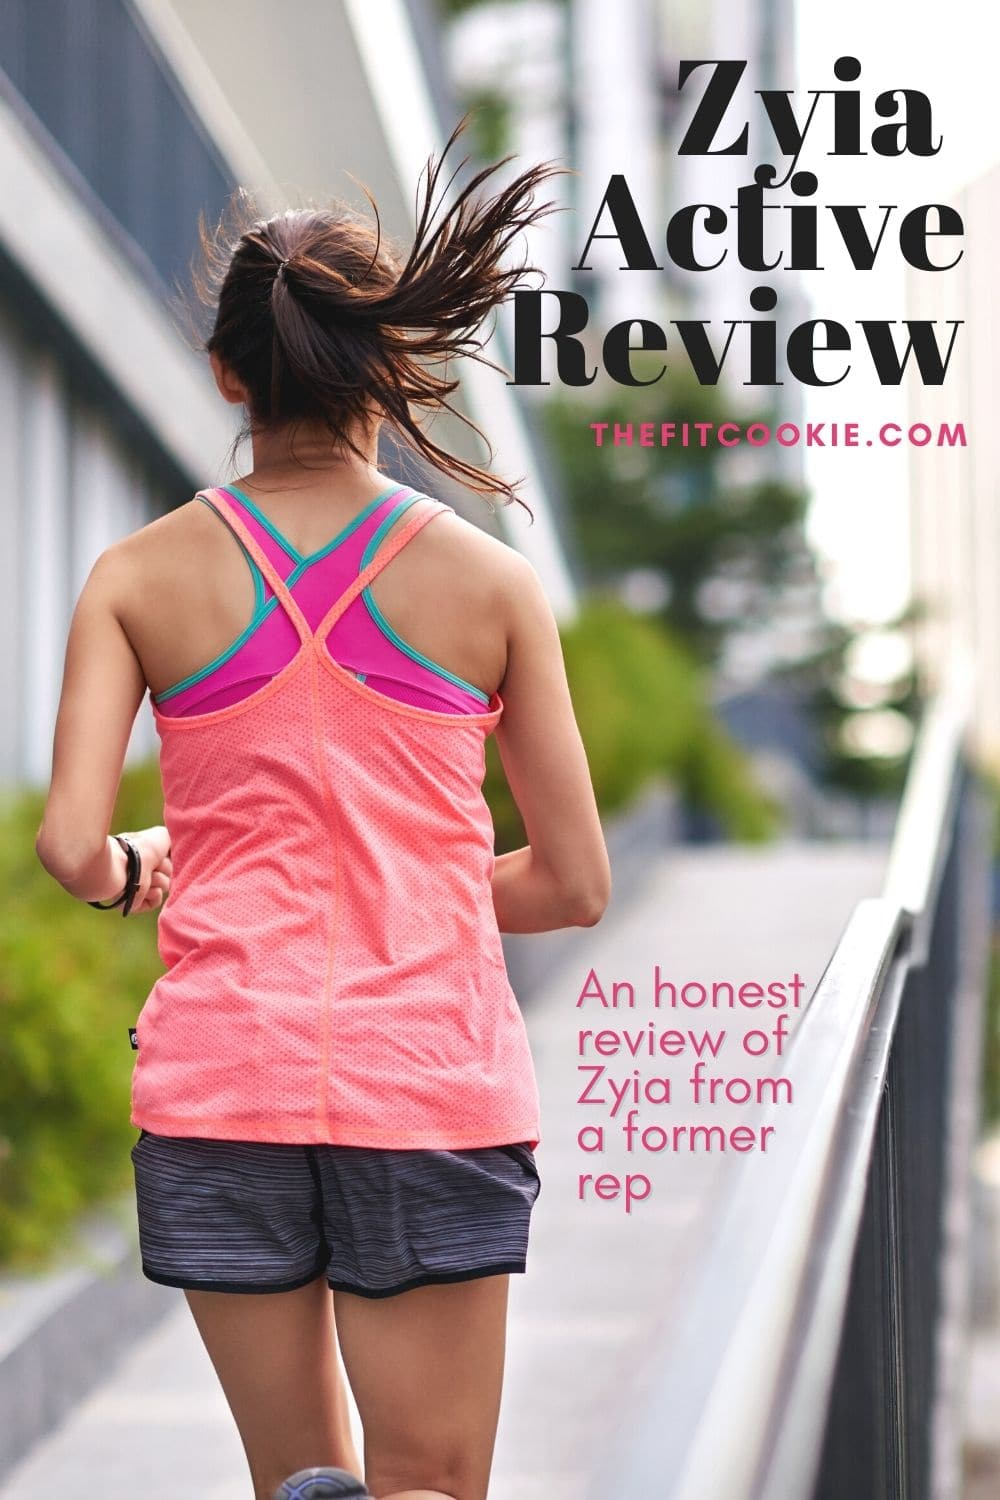 """photo of woman running with text overlay """"zyia active review"""""""